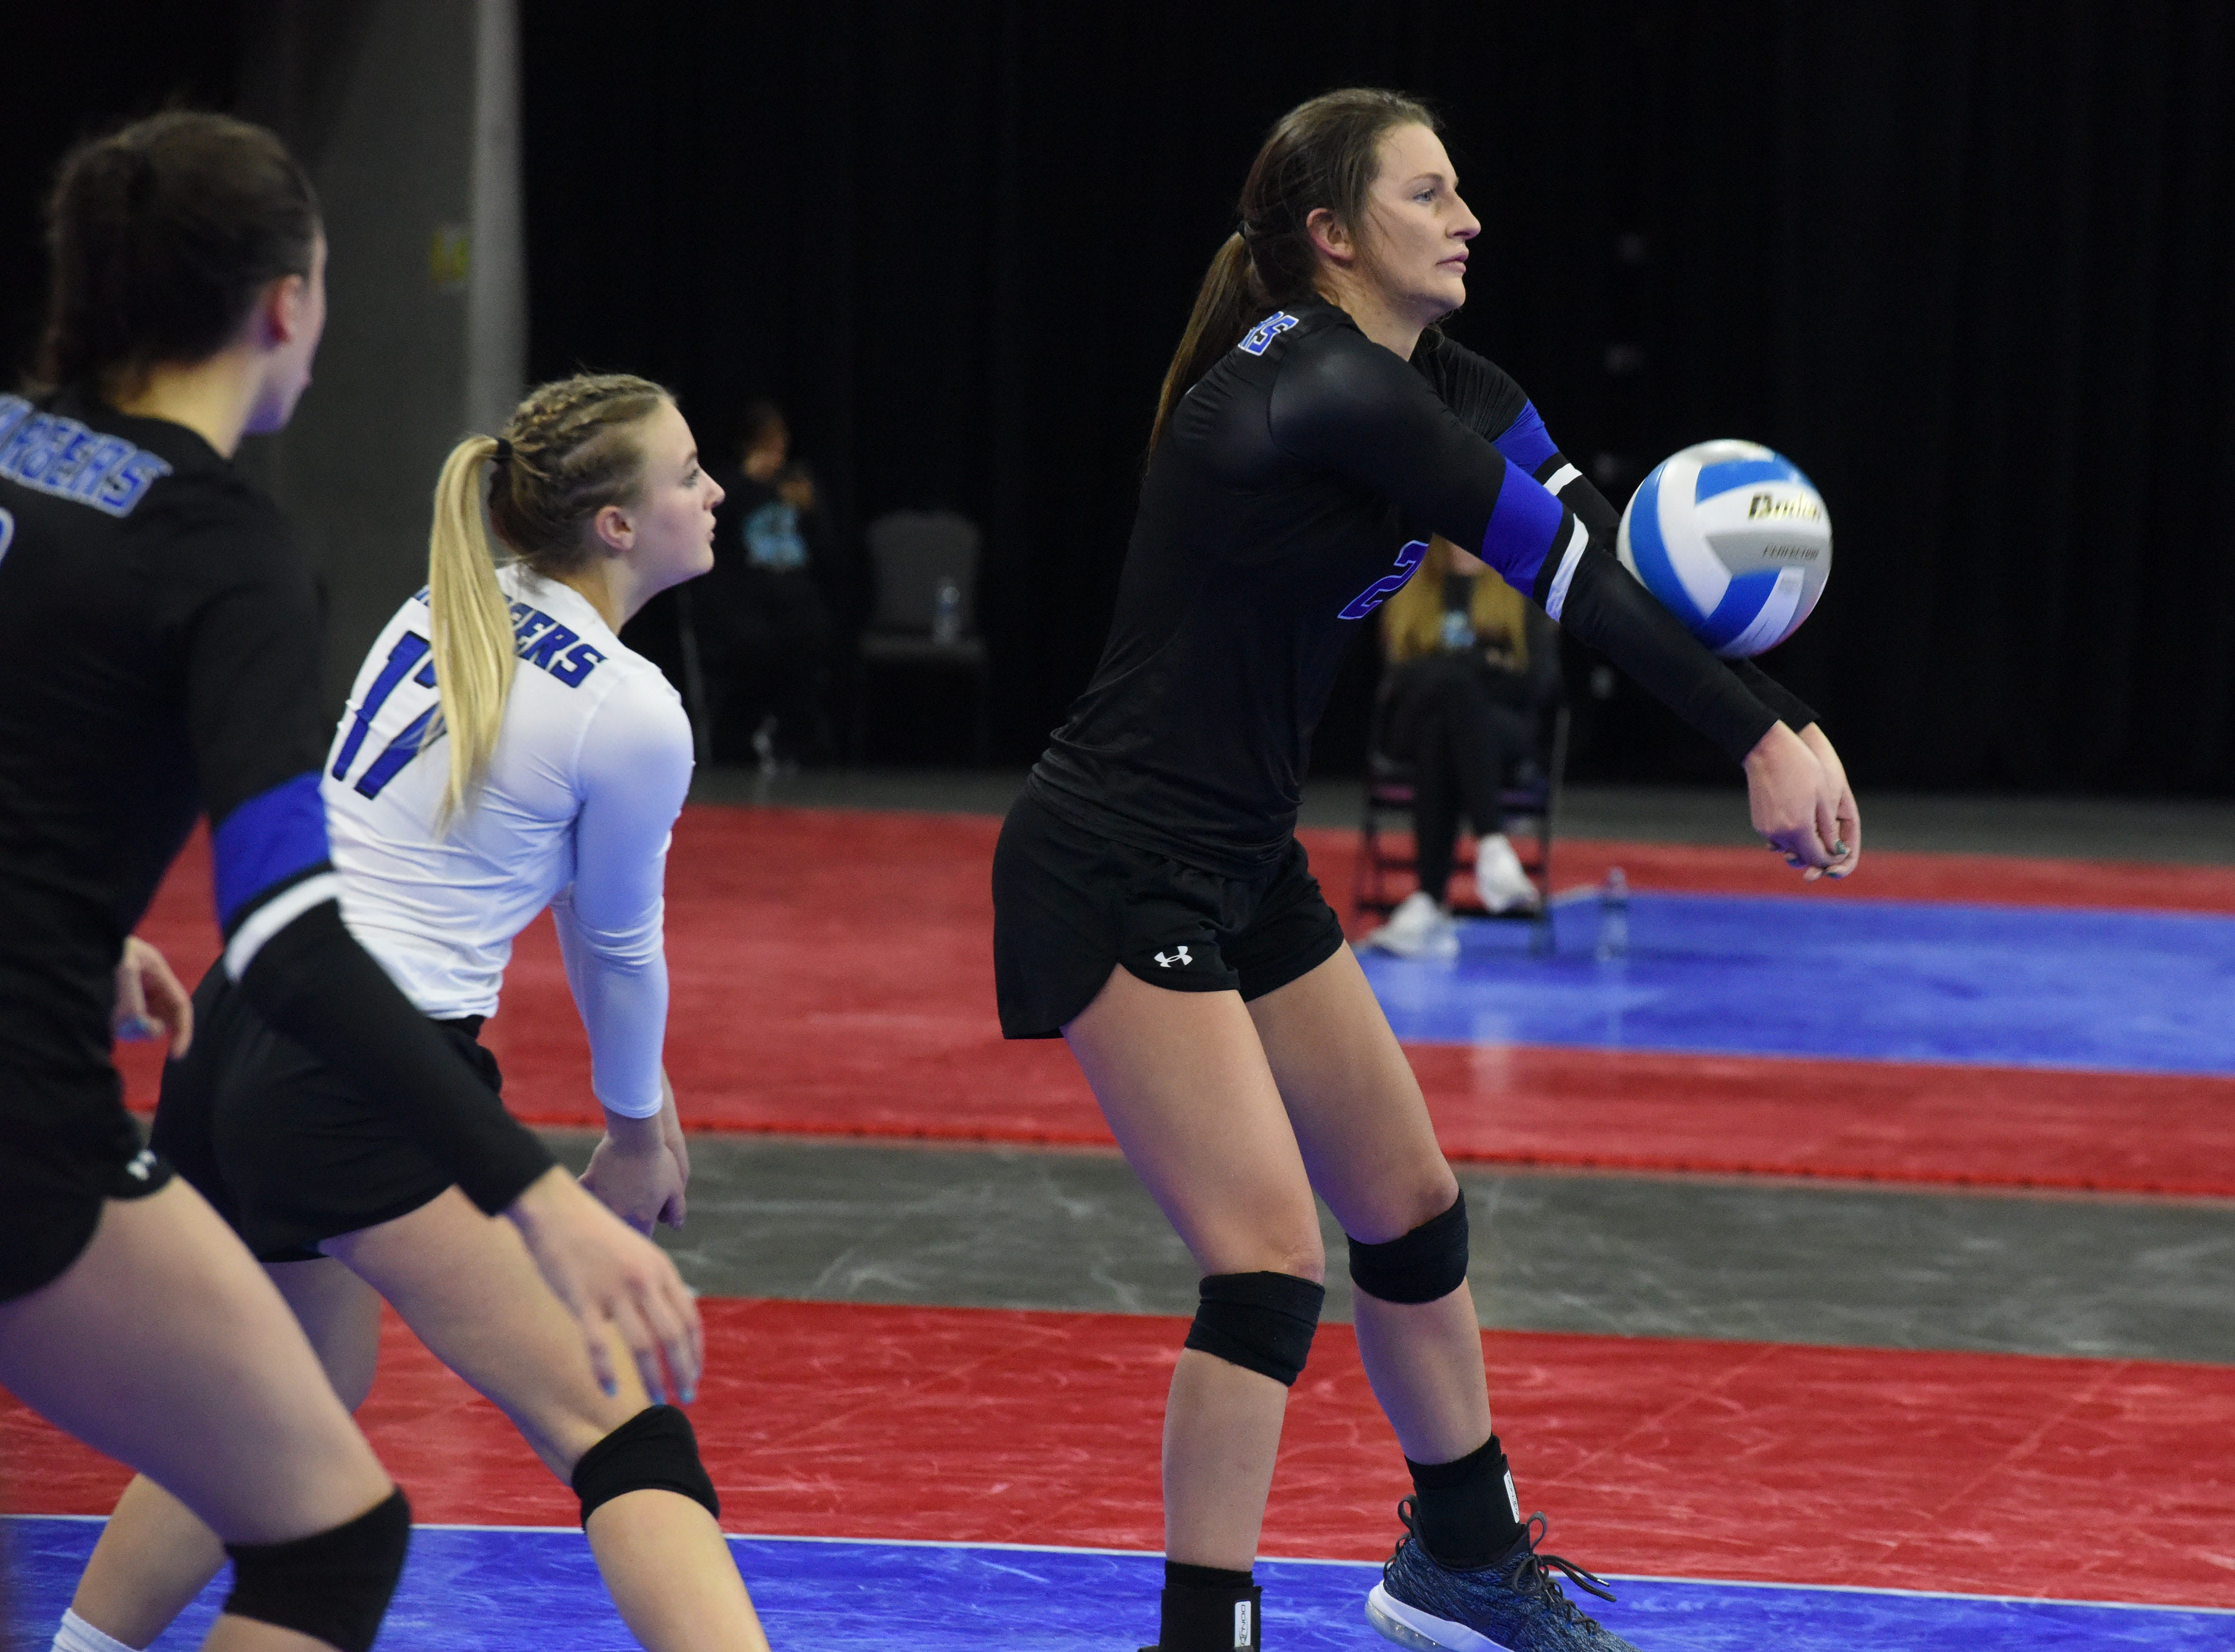 Sioux Falls Christian's Kylee Van Egdom (2) bumps the ball during a match against Miller, Saturday, Nov. 17, 2018, at the Denny Sanford Premier Center in Sioux Falls, S.D.